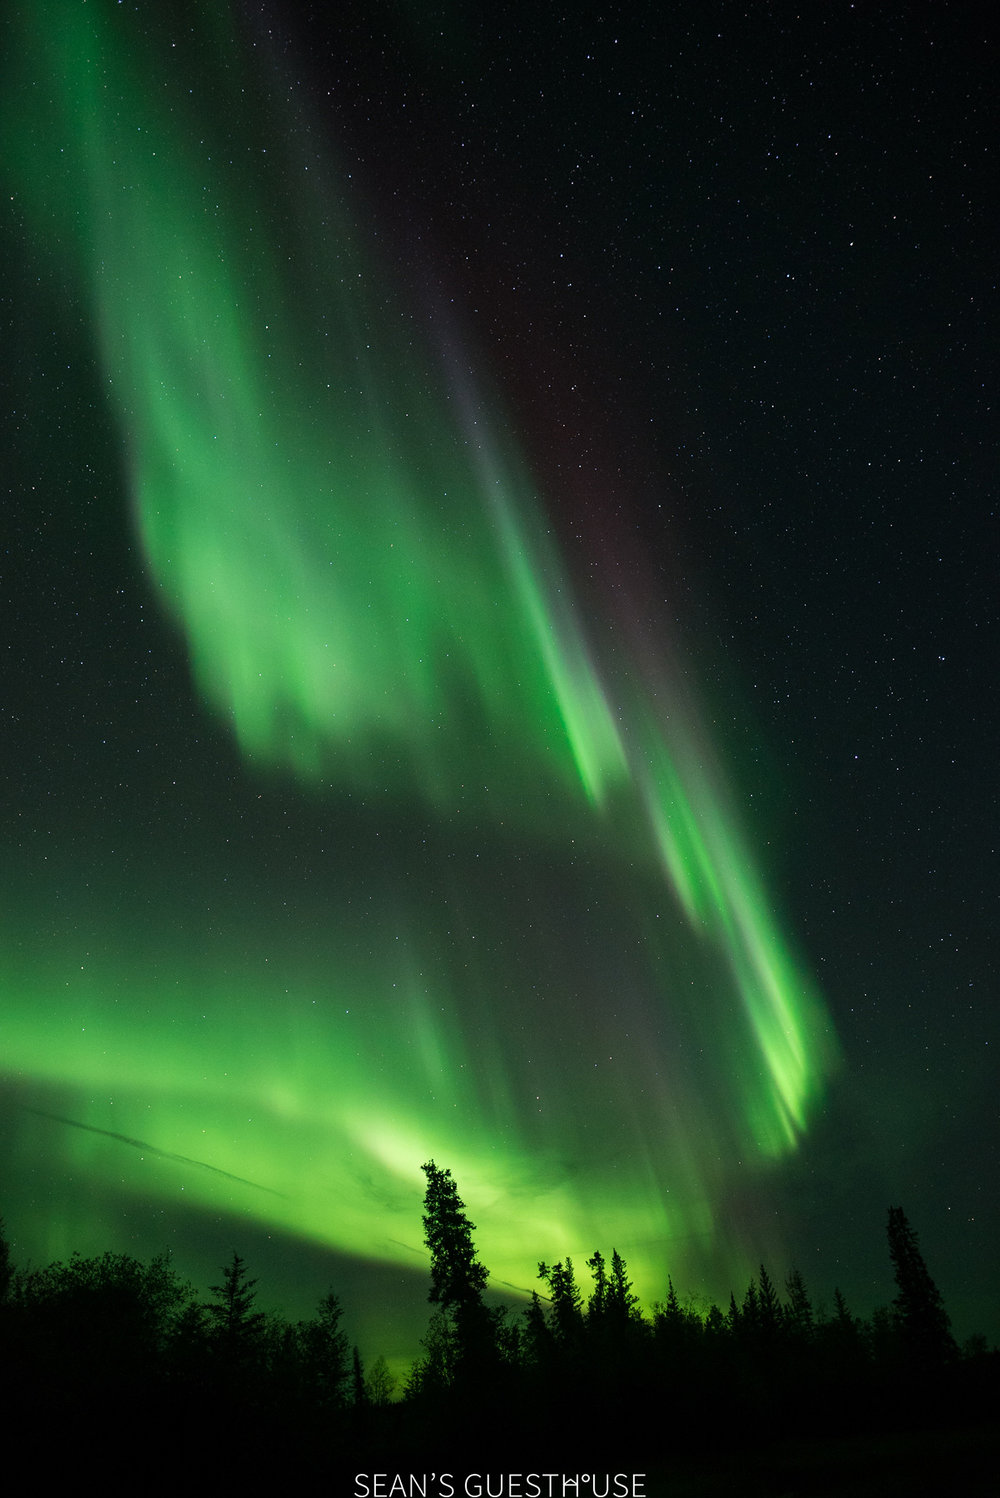 Sean's Guesthouse - Northern Lights Tour Yellowknife - 4.jpg